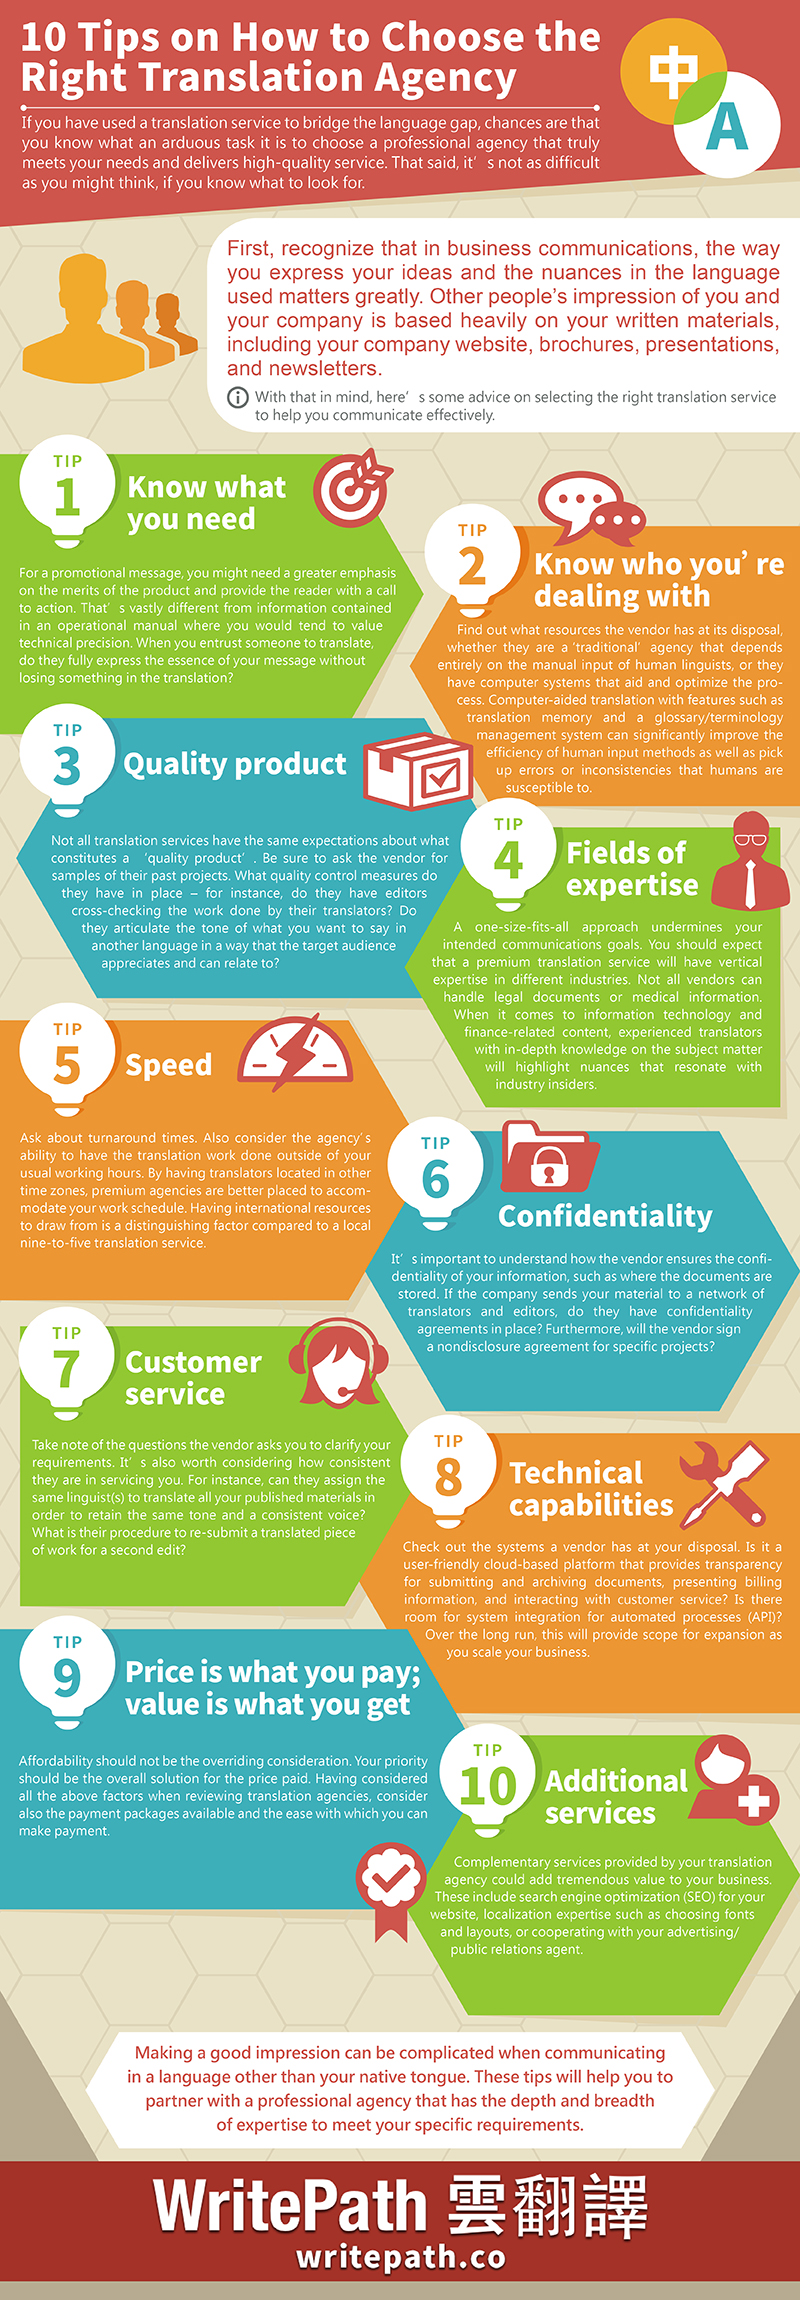 Infographic] 10 Tips on How to Choose the Right Translation Agency